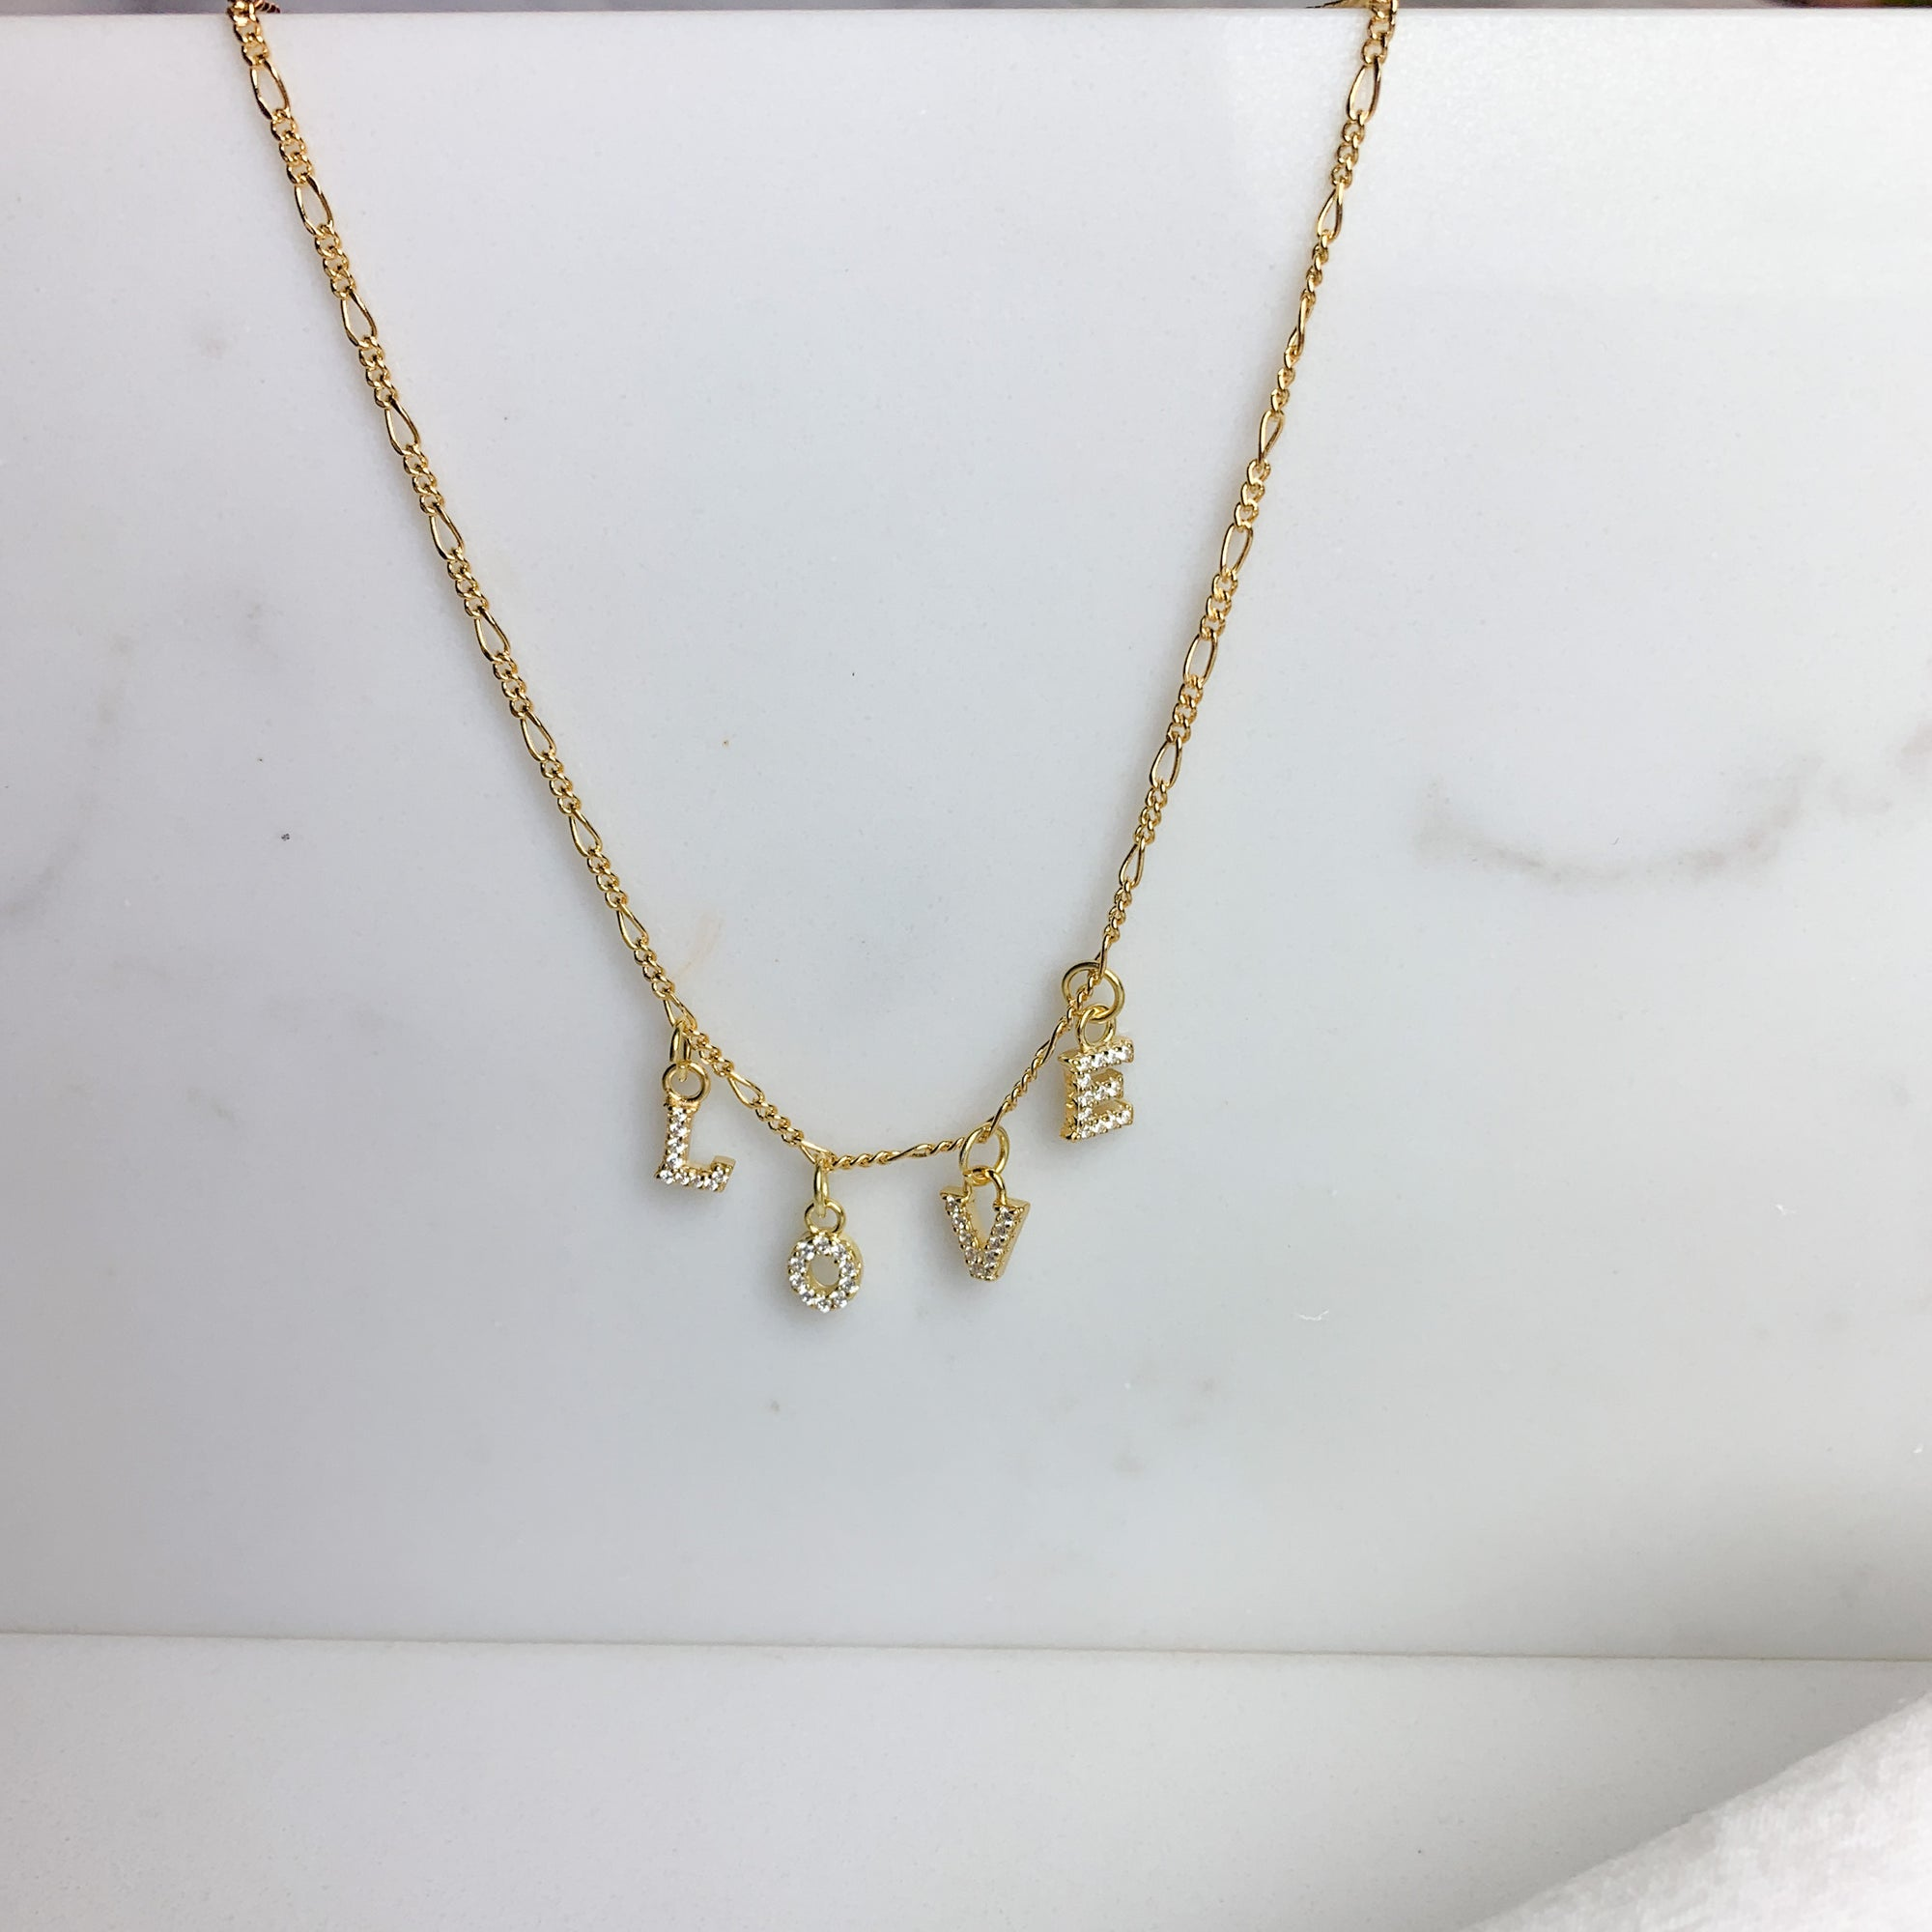 NAME PIPER NECKLACE